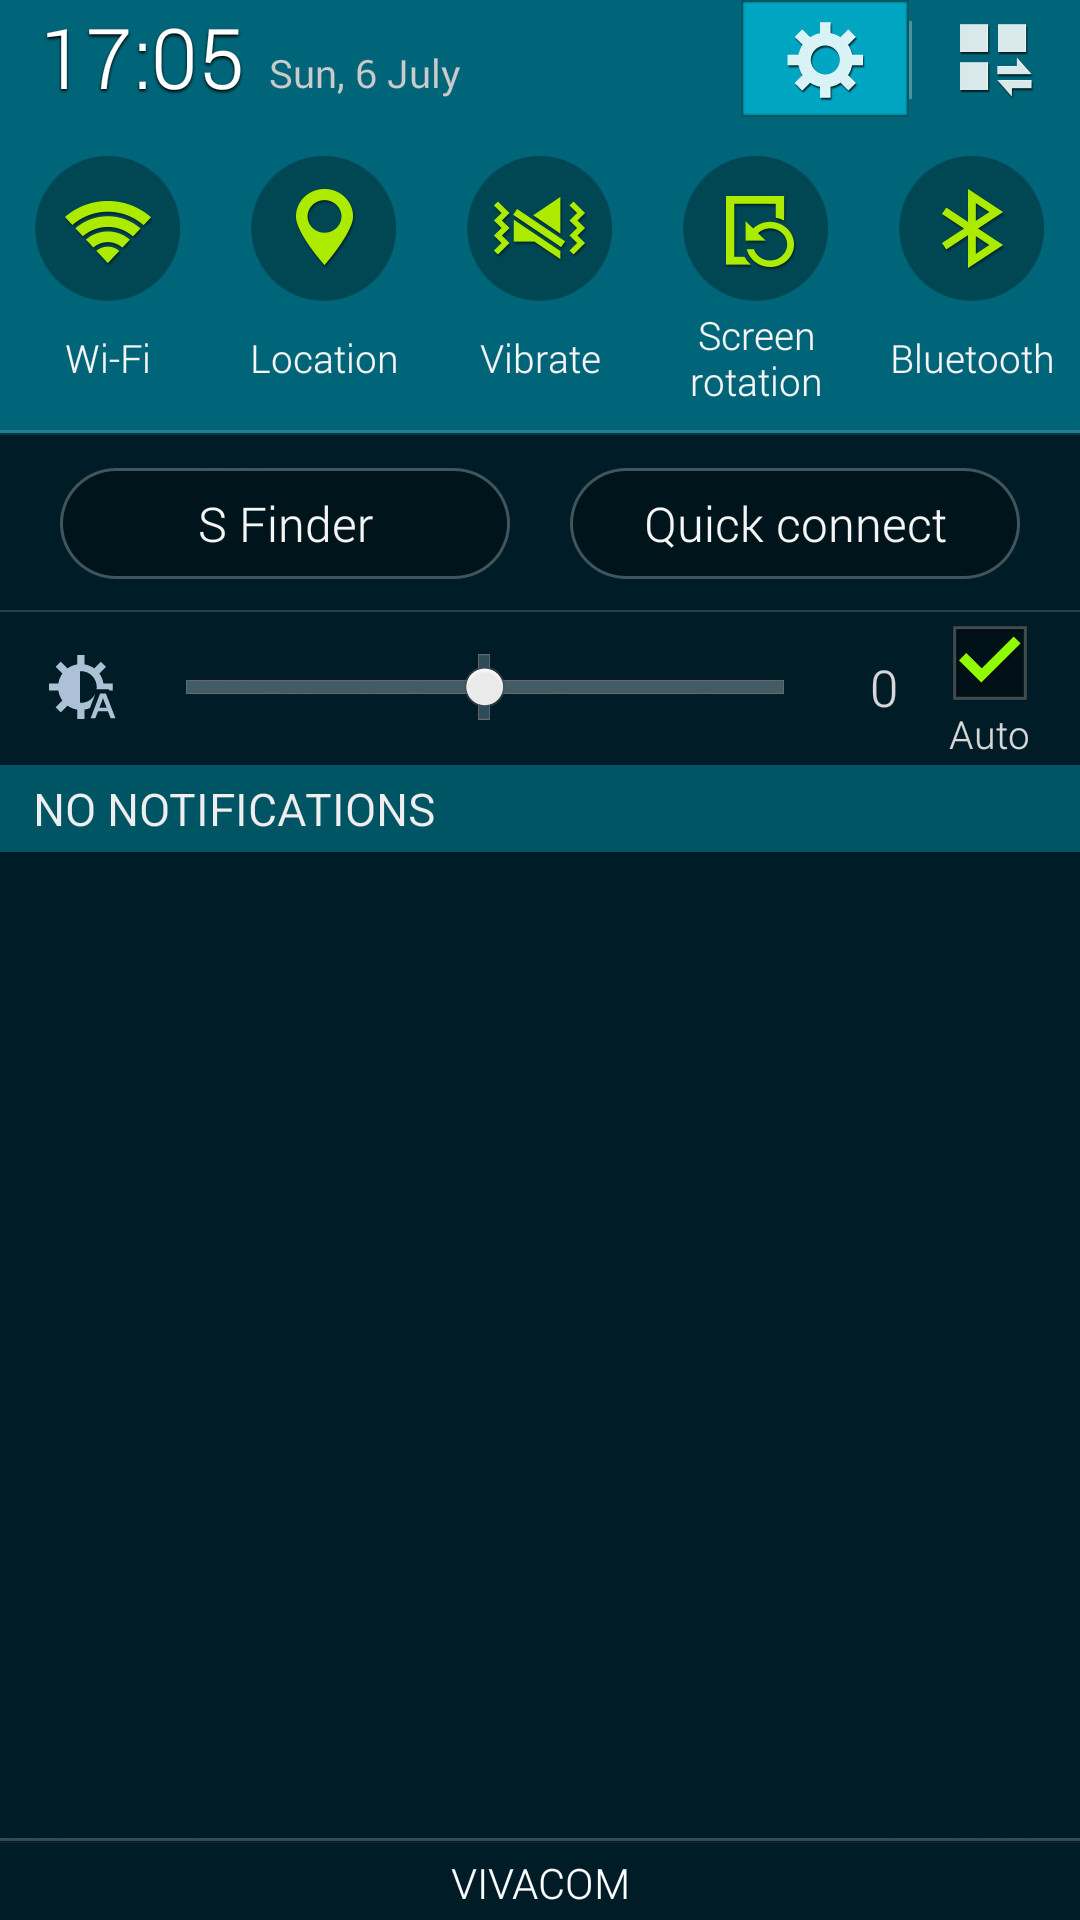 Swipe down from the top of your Galaxy S5 home screen to pull now the Notification dropdown, then Tap on the Settings icon in the top right